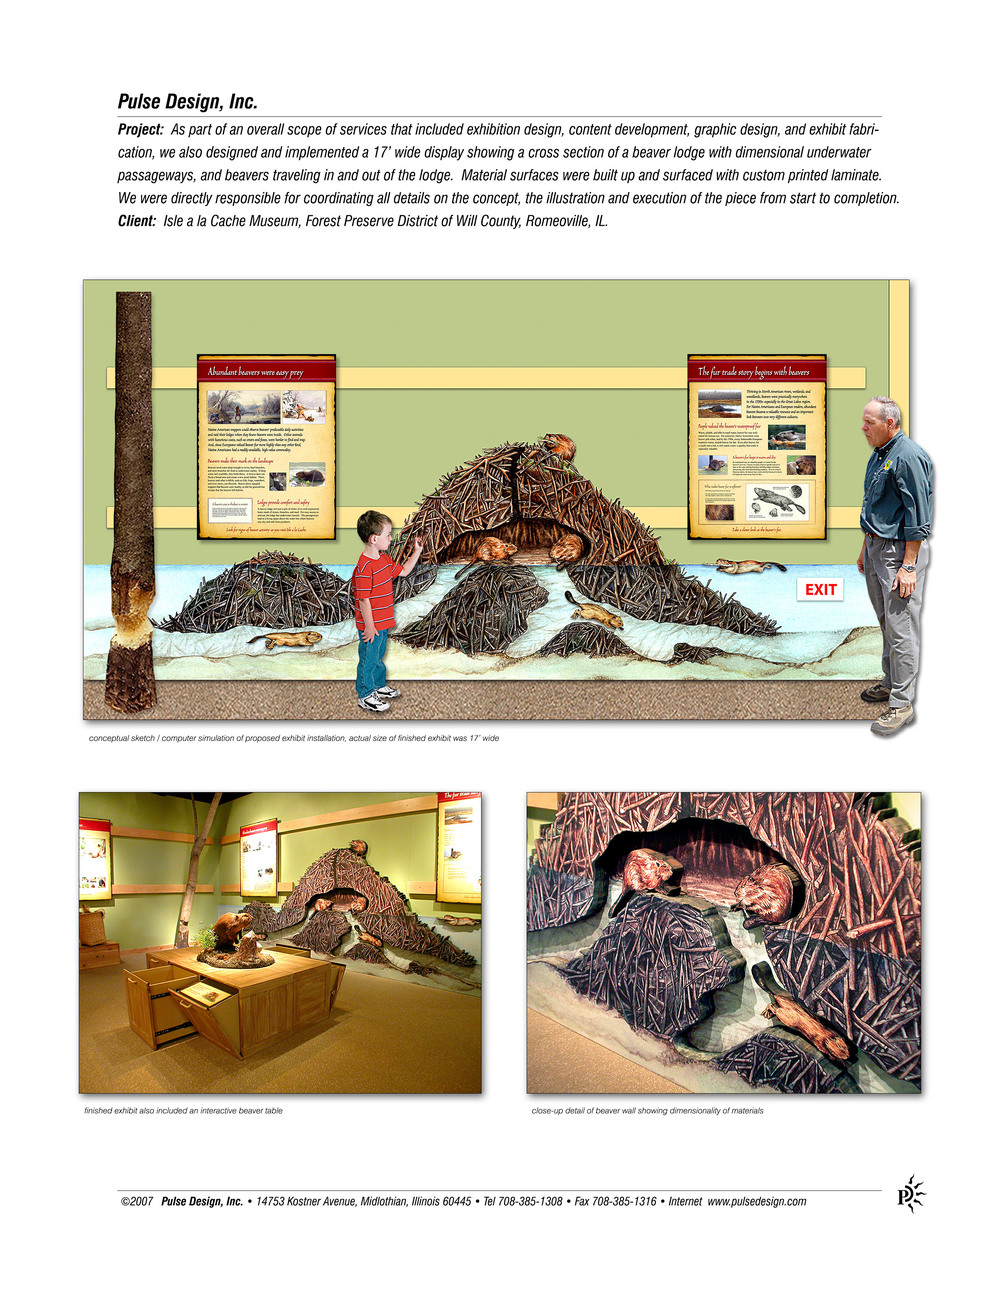 Isla-a-la-Cache-Exhibit-Beaver-Pulse-Design-Inc.jpg